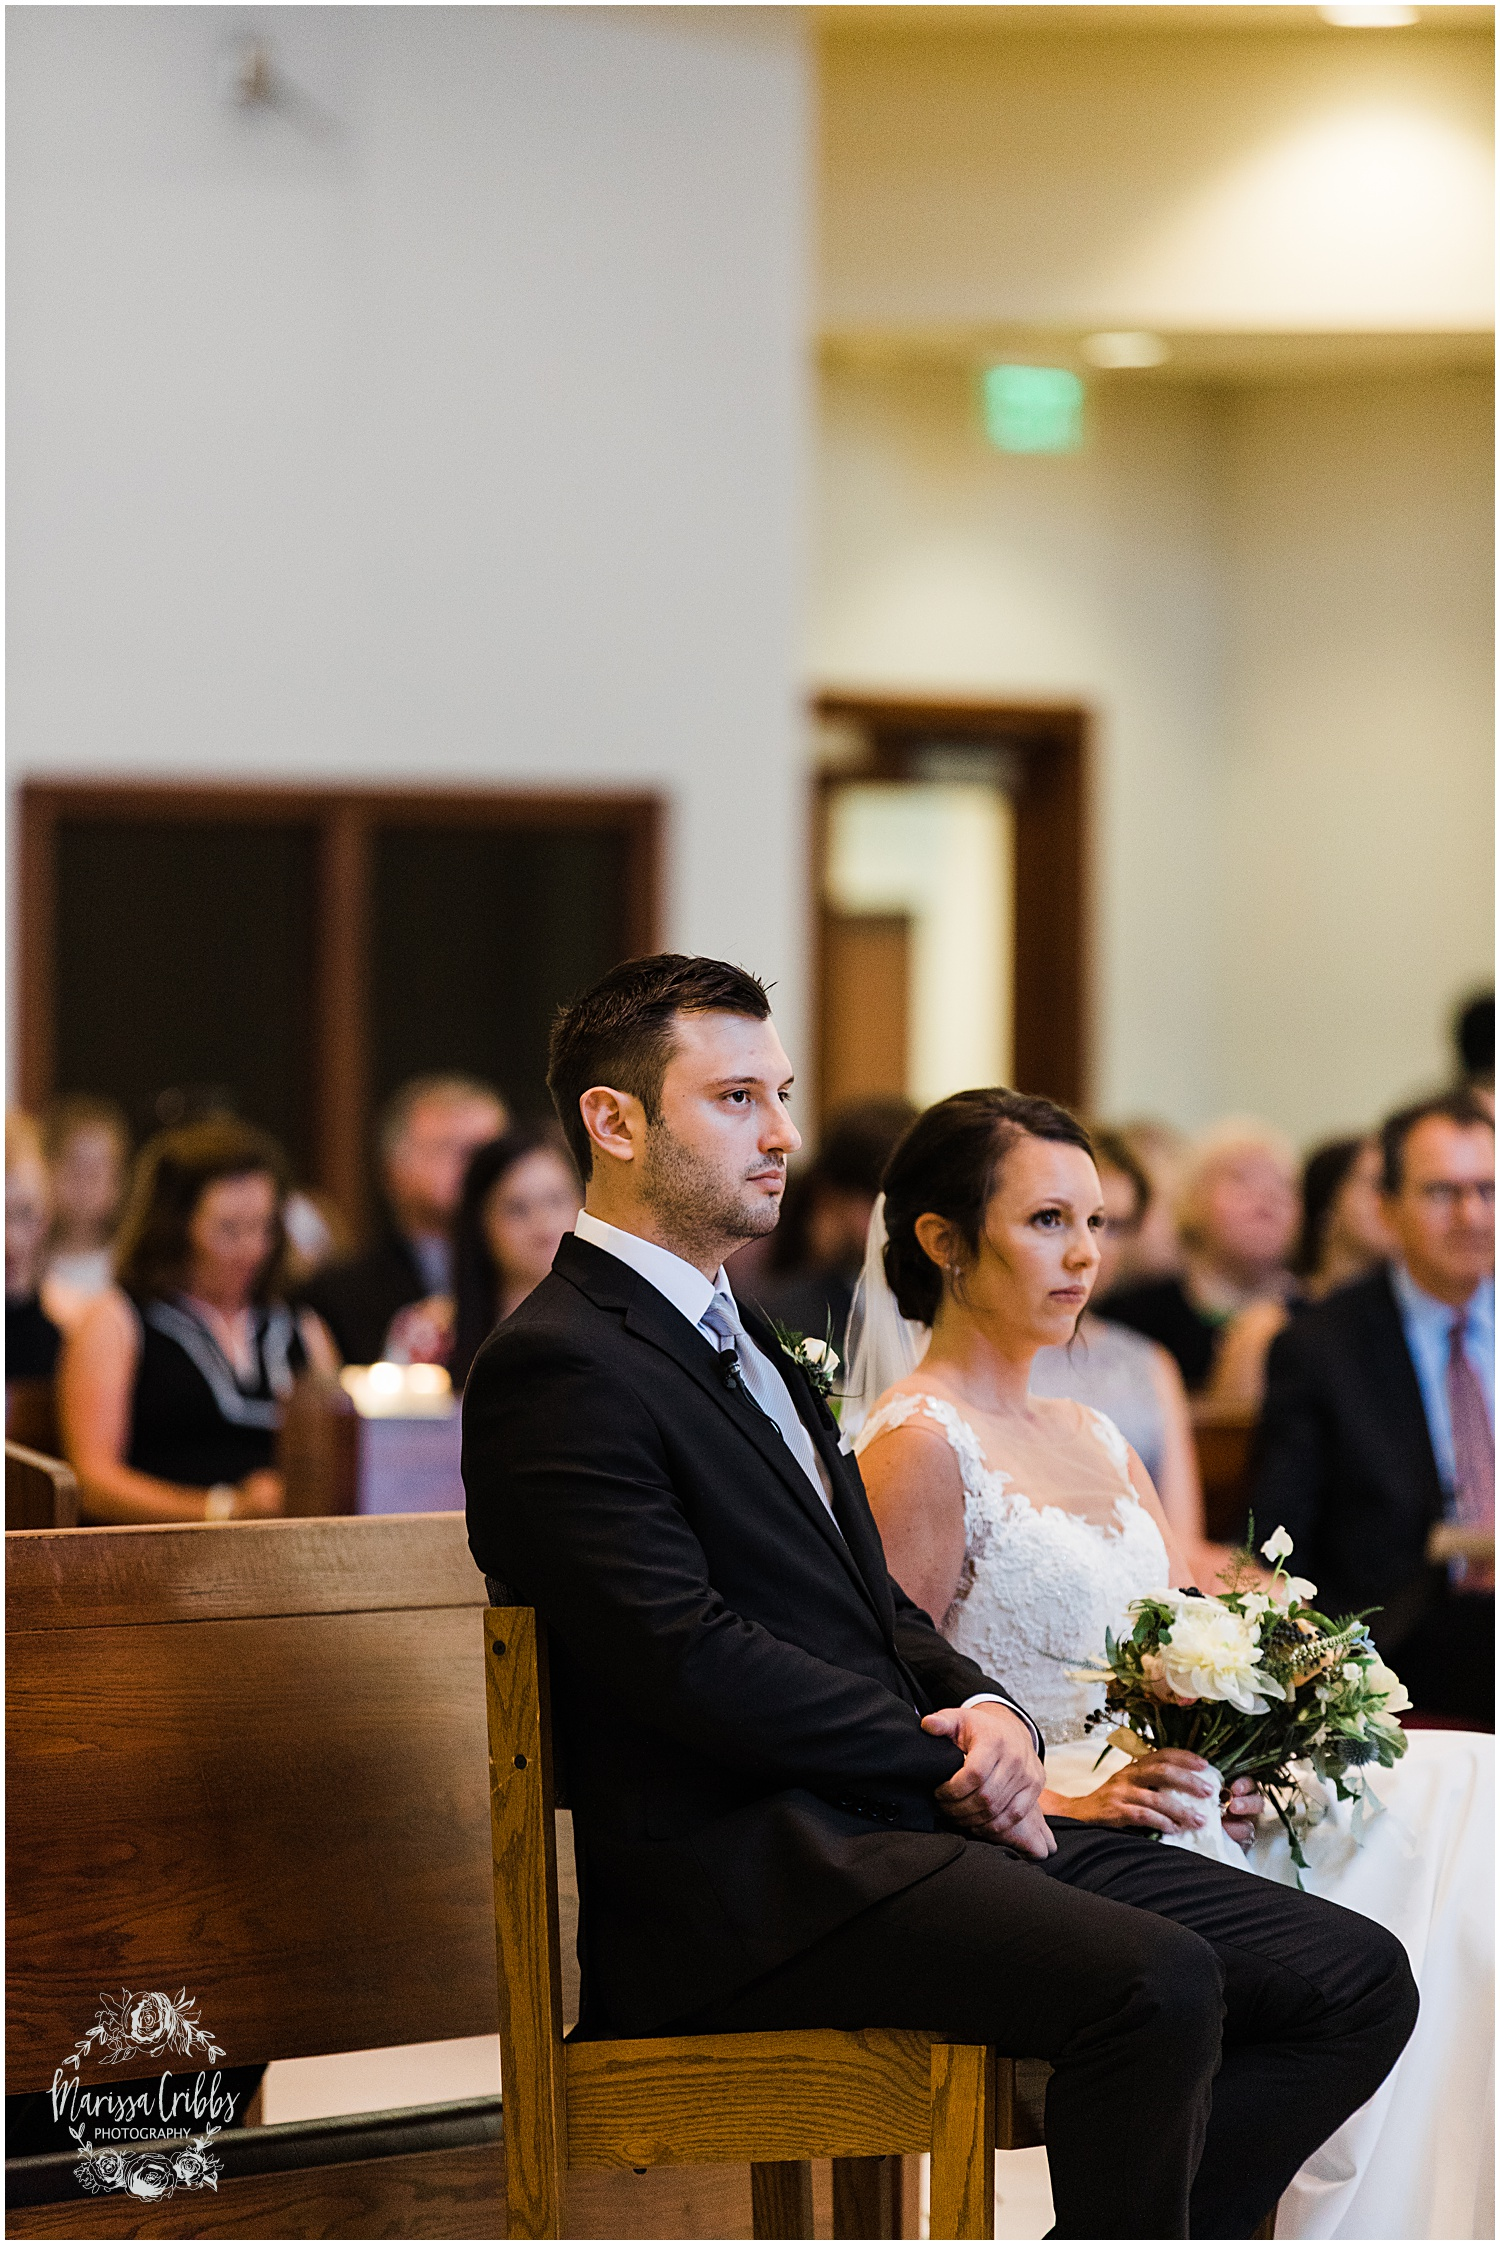 KELLY & MITCH MARRIED BLOG | MARISSA CRIBBS PHOTOGRAPHY | THE EVERLY EVENT SPACE_8835.jpg